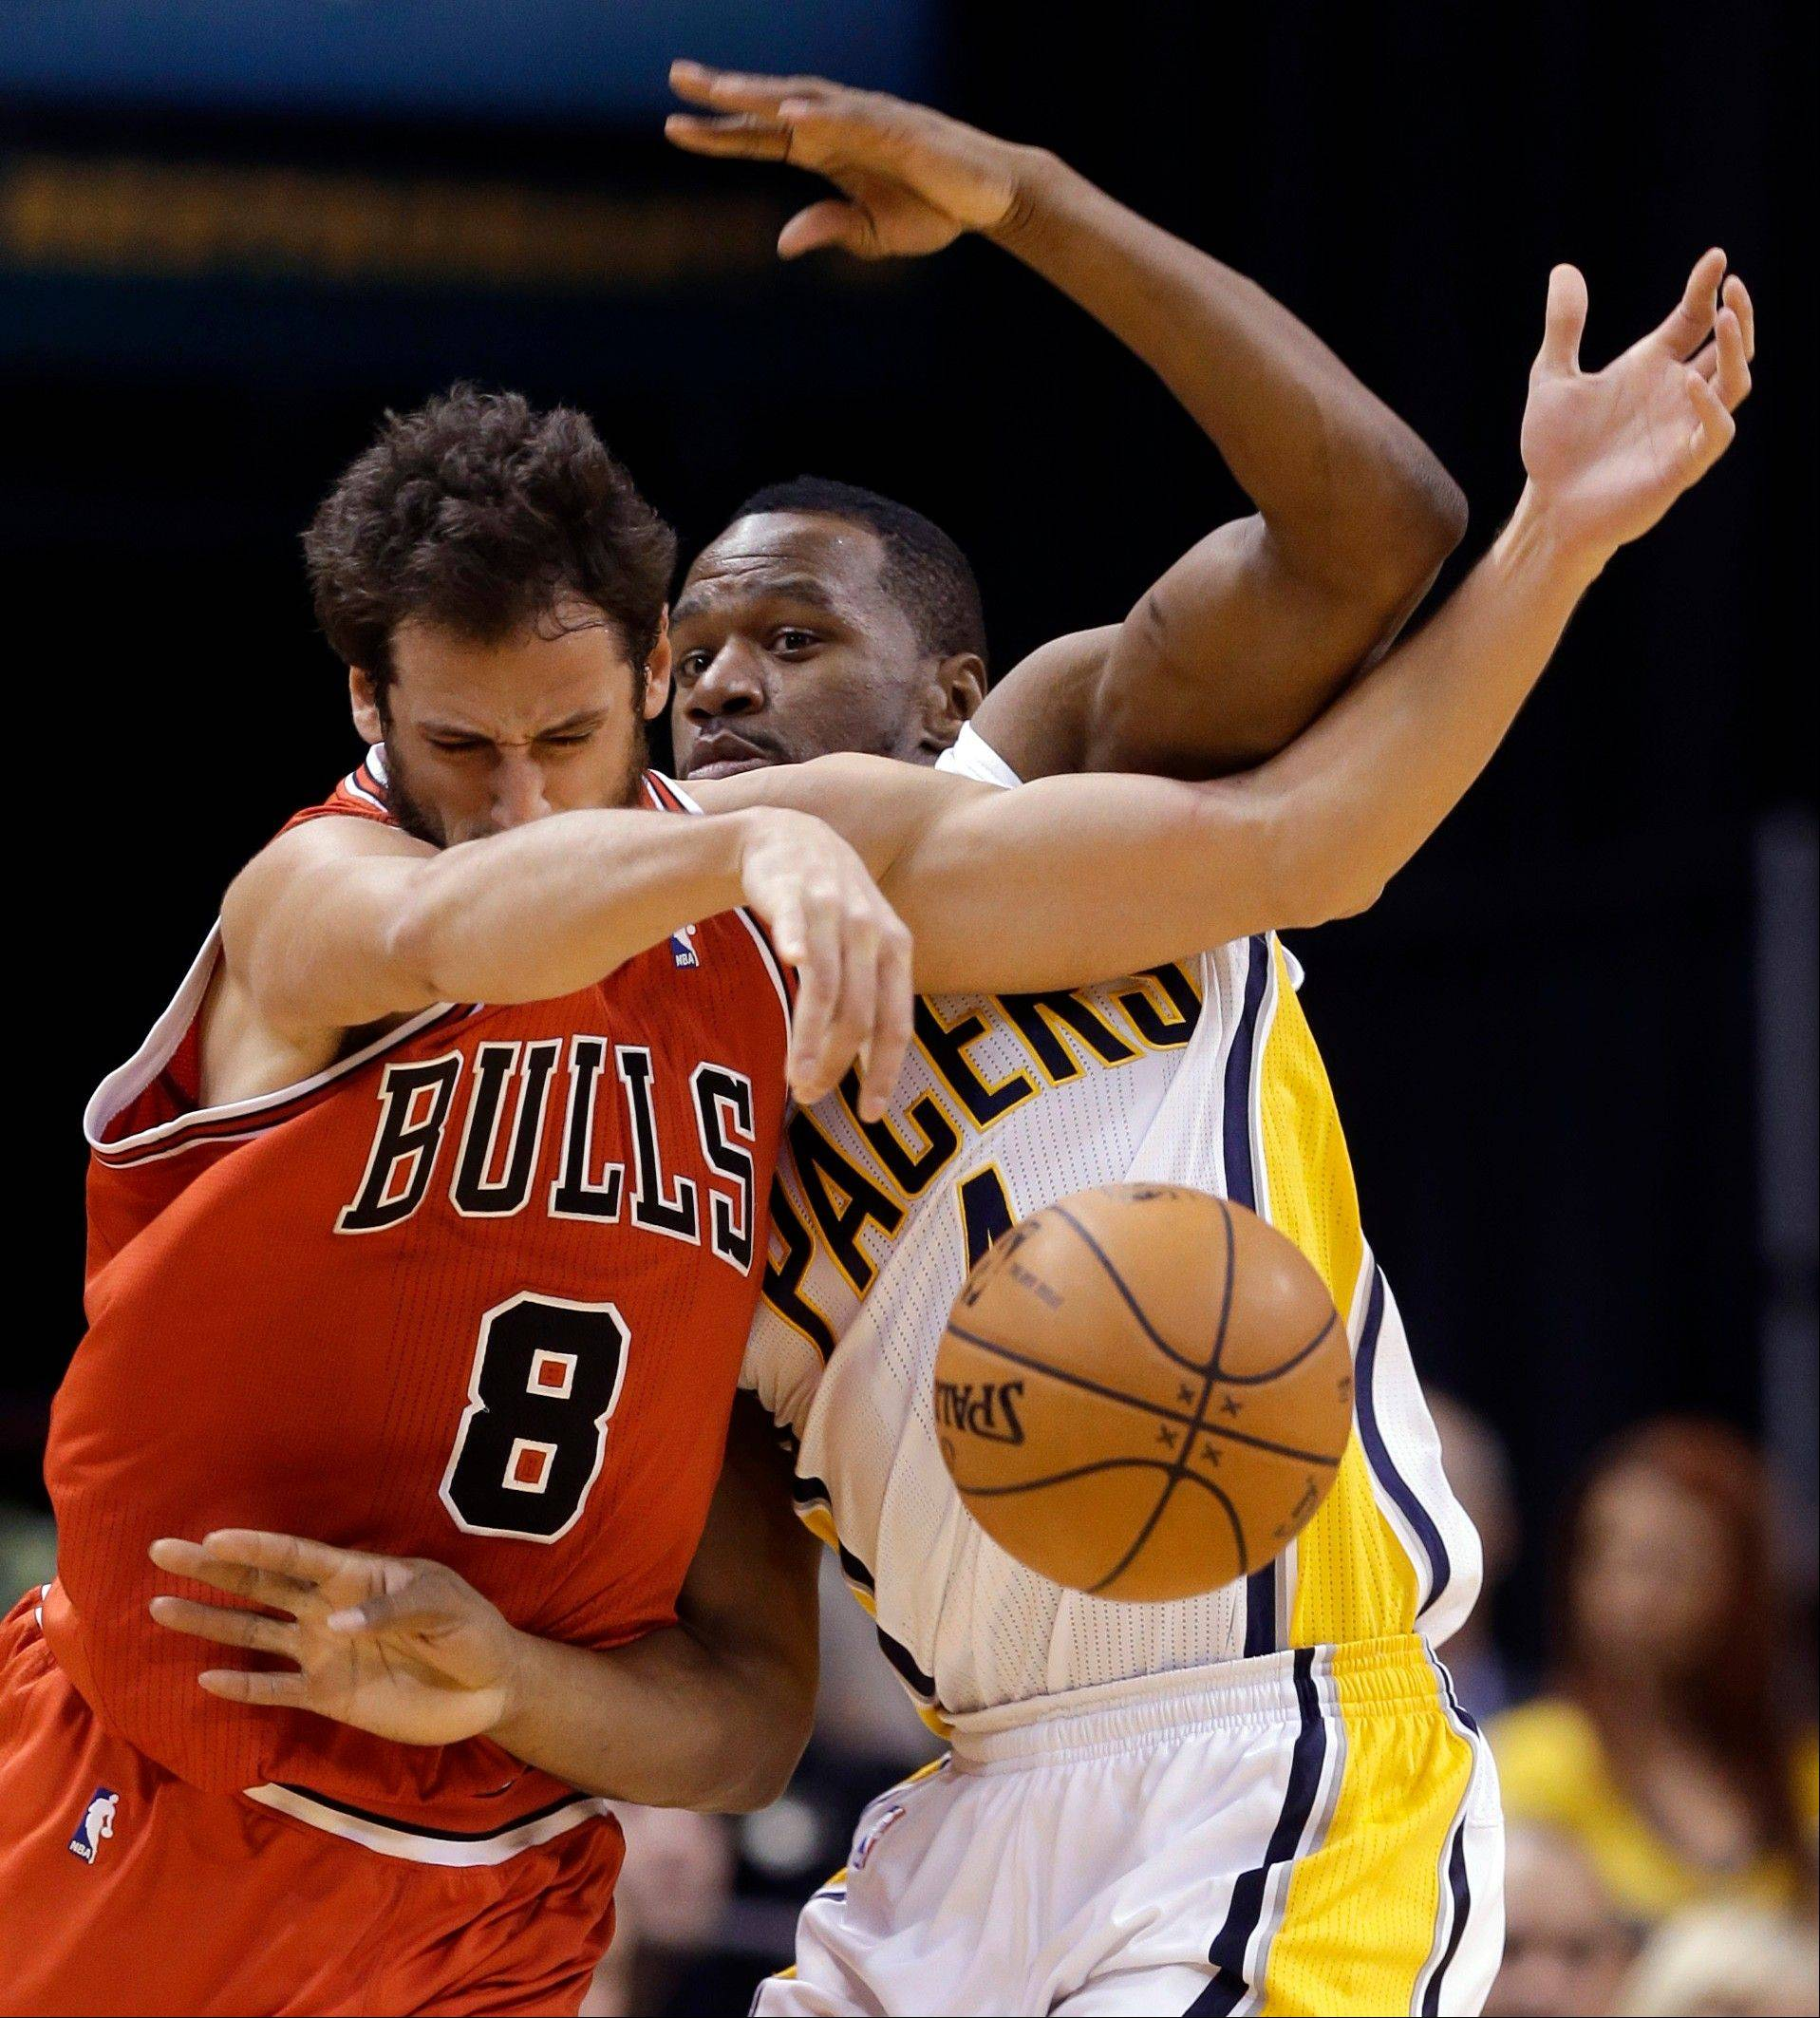 Bulls guard Marco Belinelli, left, and Pacers forward Sam Young get tangled up in the second half of Monday's game in Indianapolis.